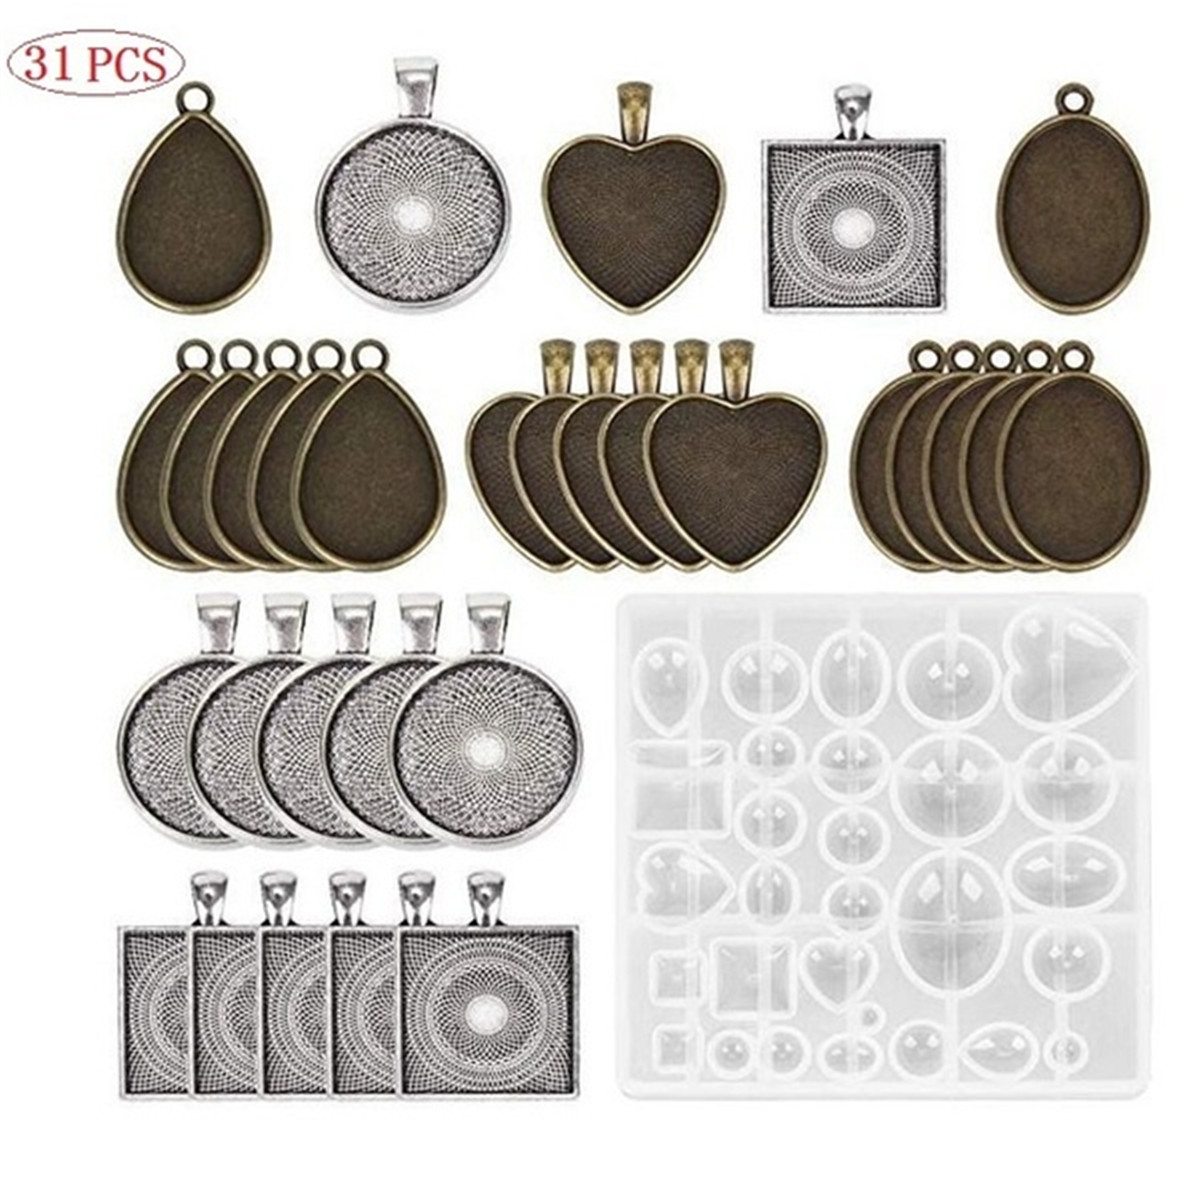 DIY Craft Resin Casting Molds Kit Silicone Mold Making Jewelry Pendant Mould